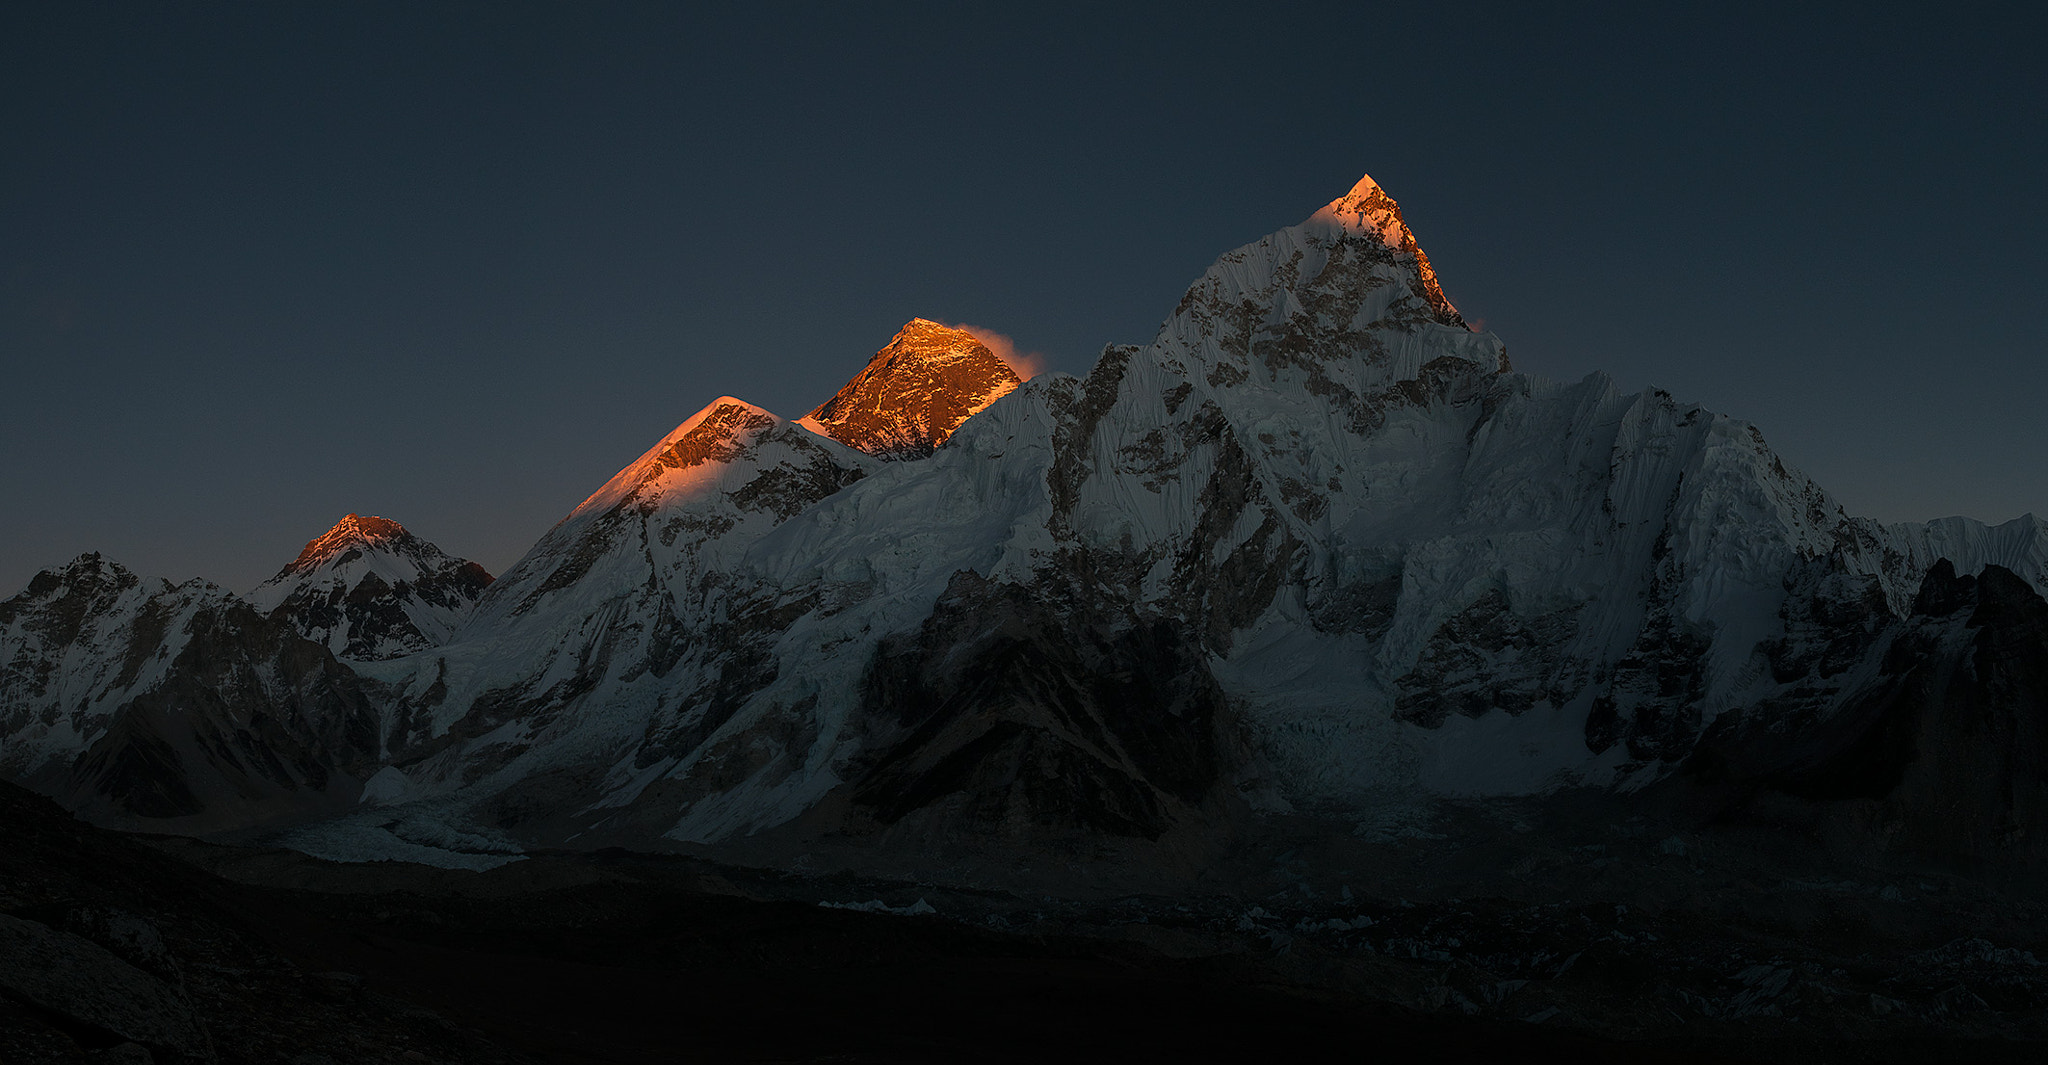 Photograph Everest Pano by Arthur Fuse on 500px